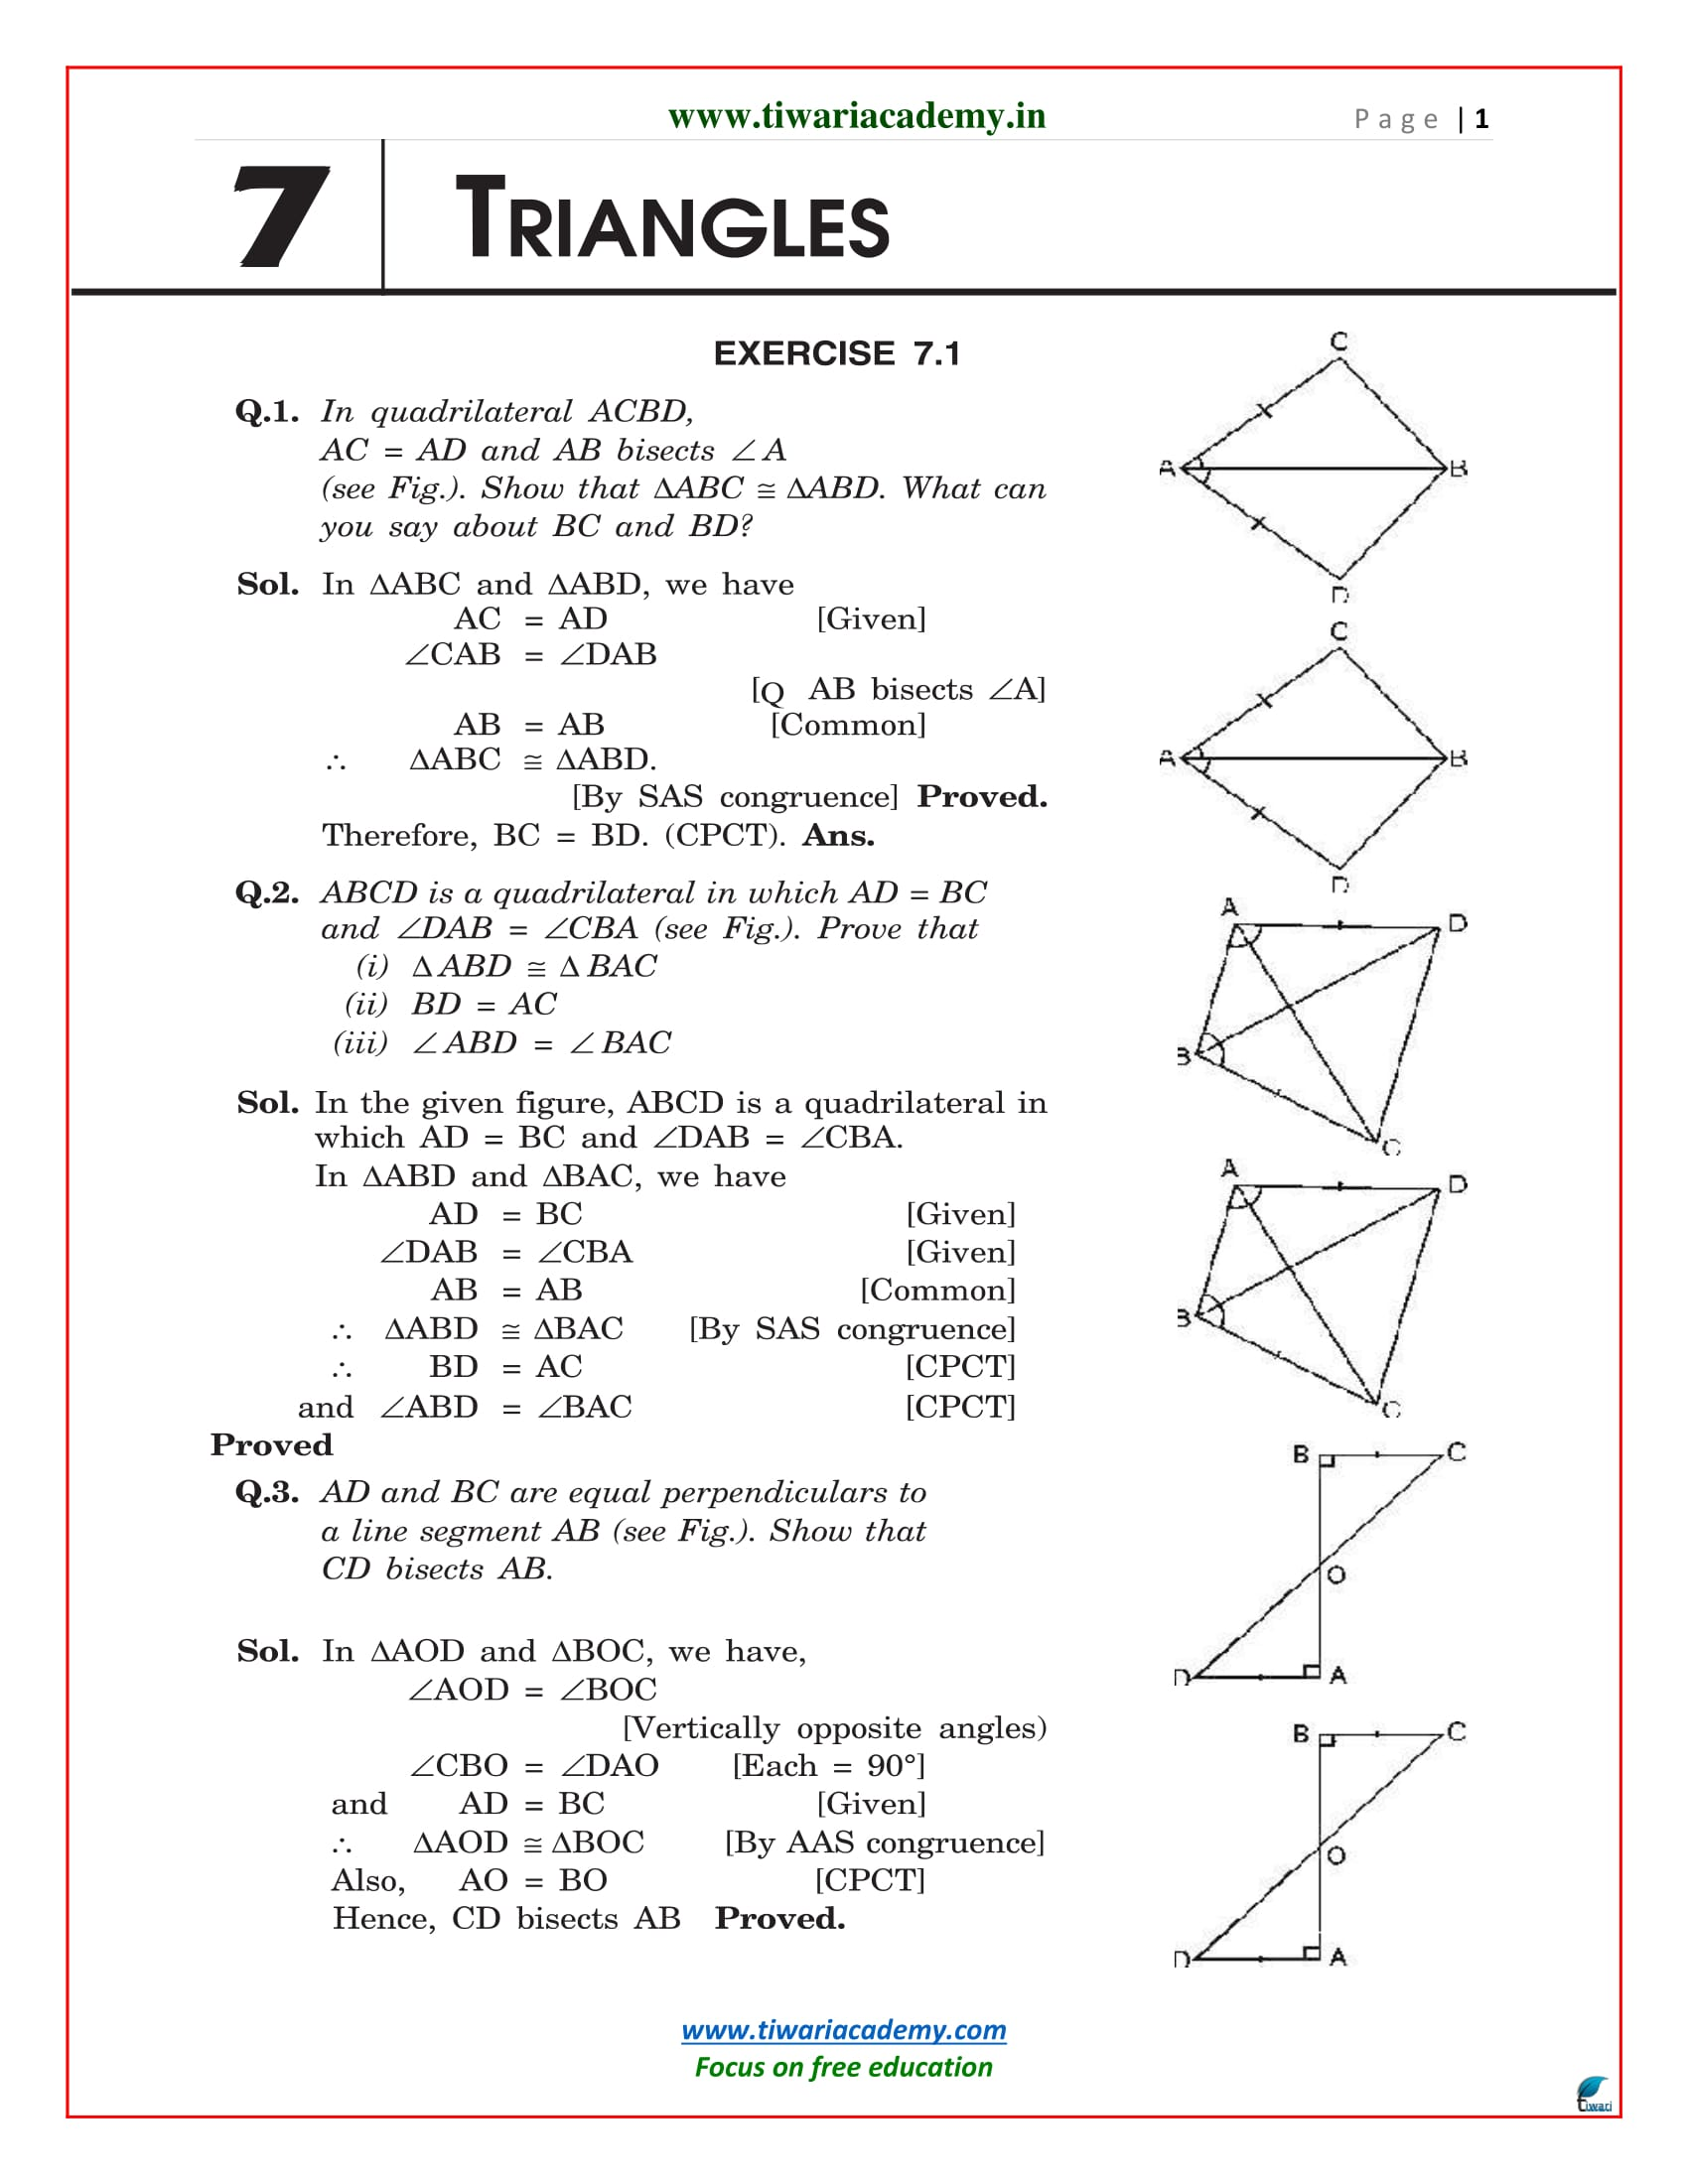 NCERT Solutions for Class 9 Maths Chapter 7 Exercise 7.1